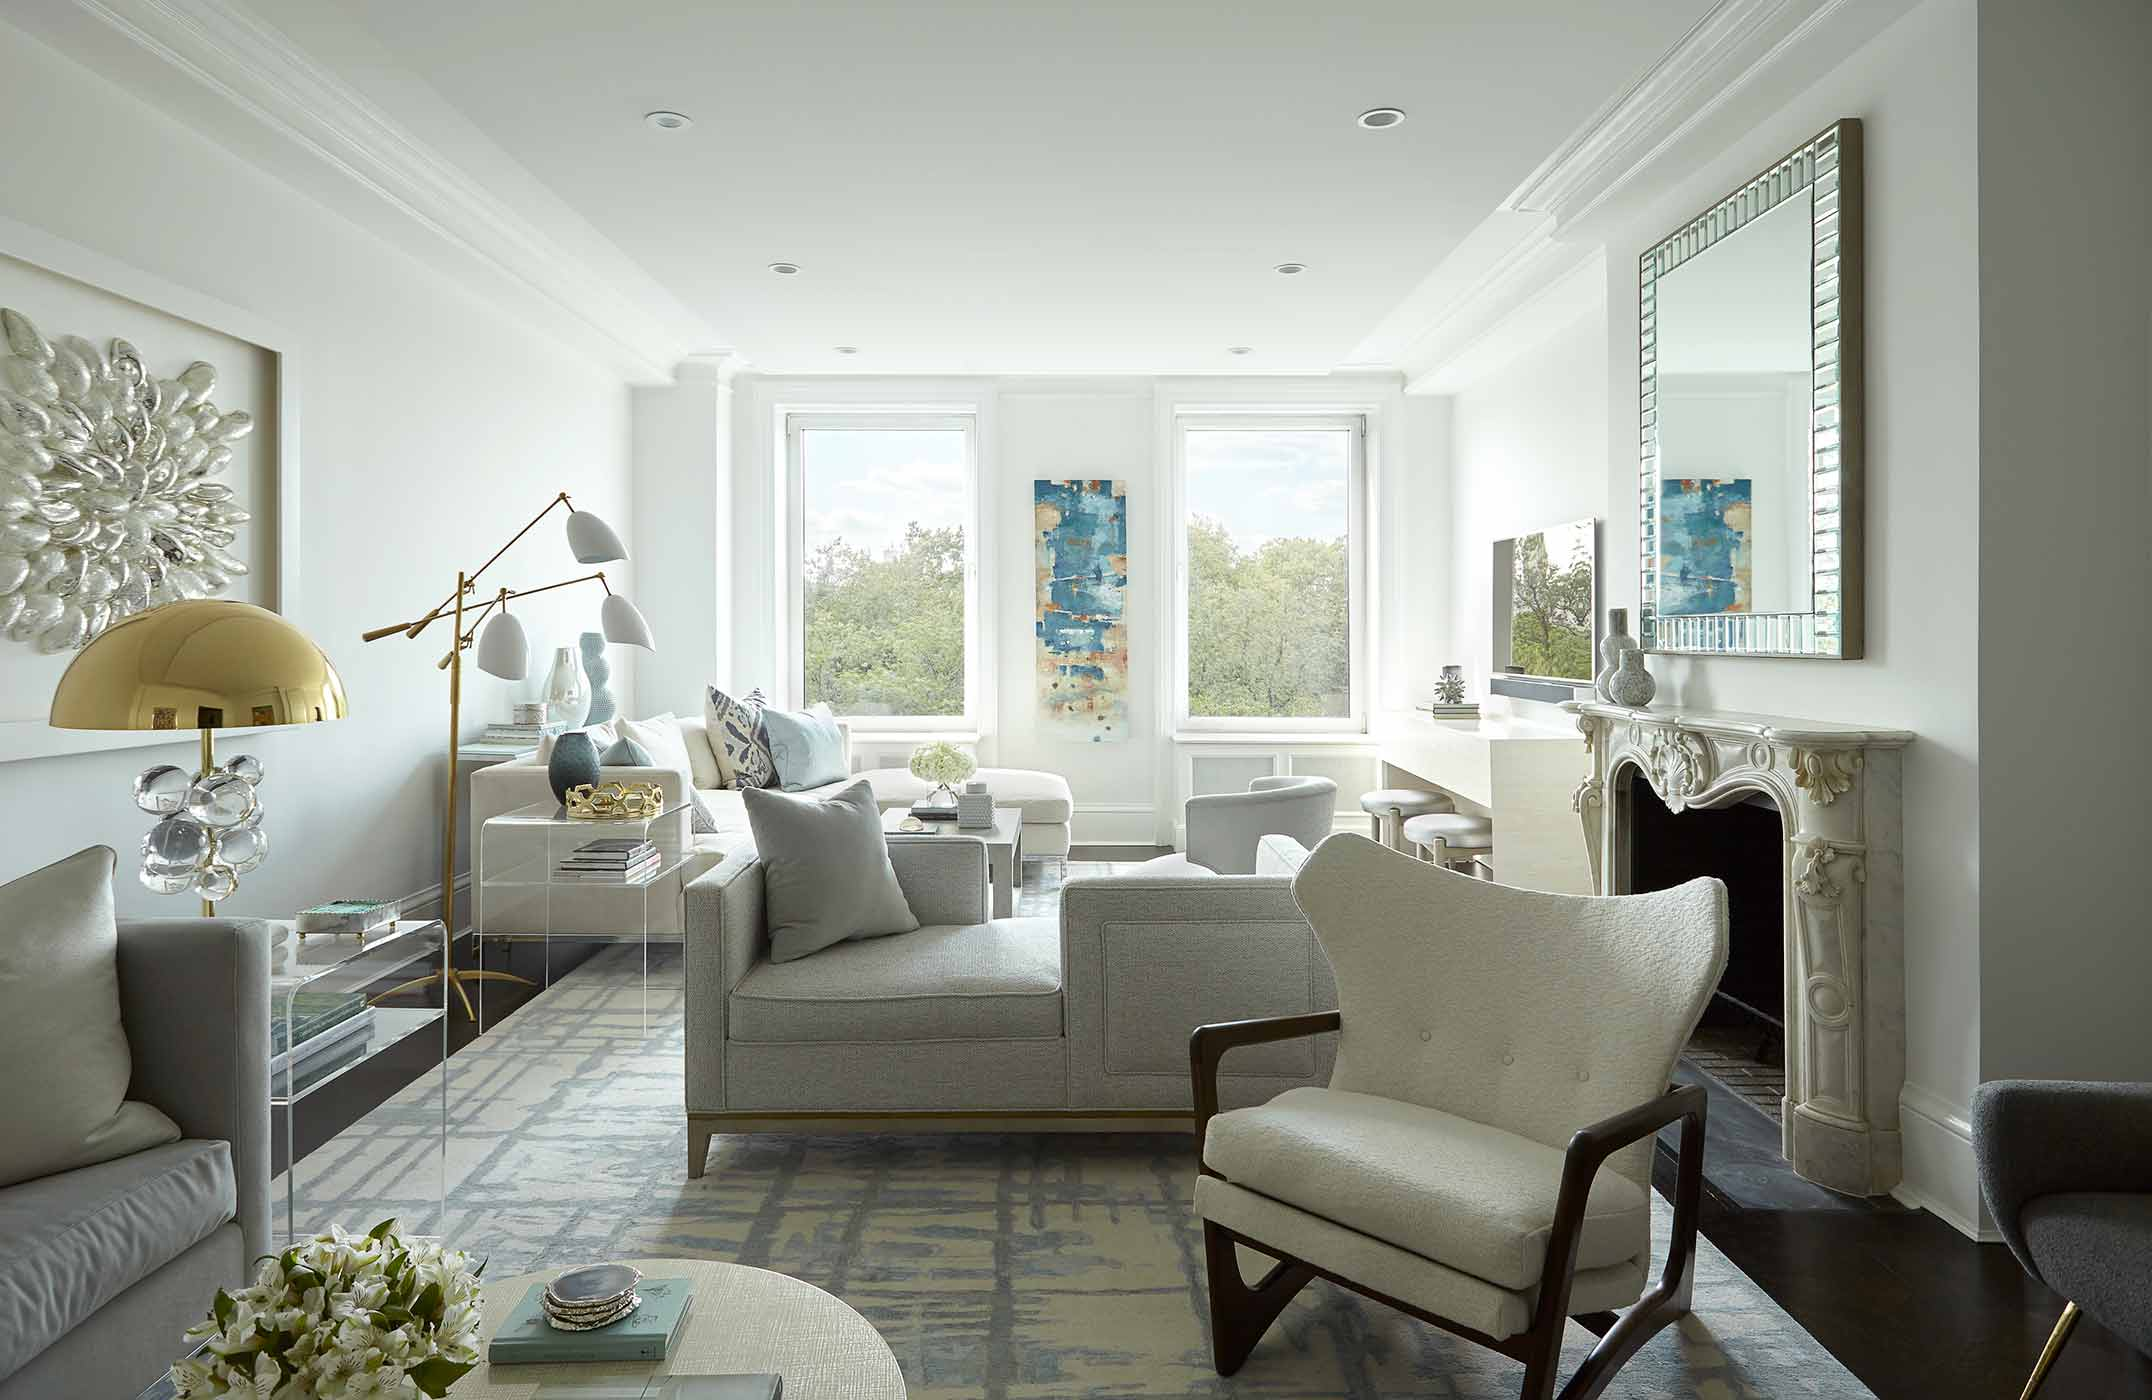 fifth avenue chic living room with mixed metals and abstract artwork and ornate marble fireplace - silver gold white grey - darci hether new york